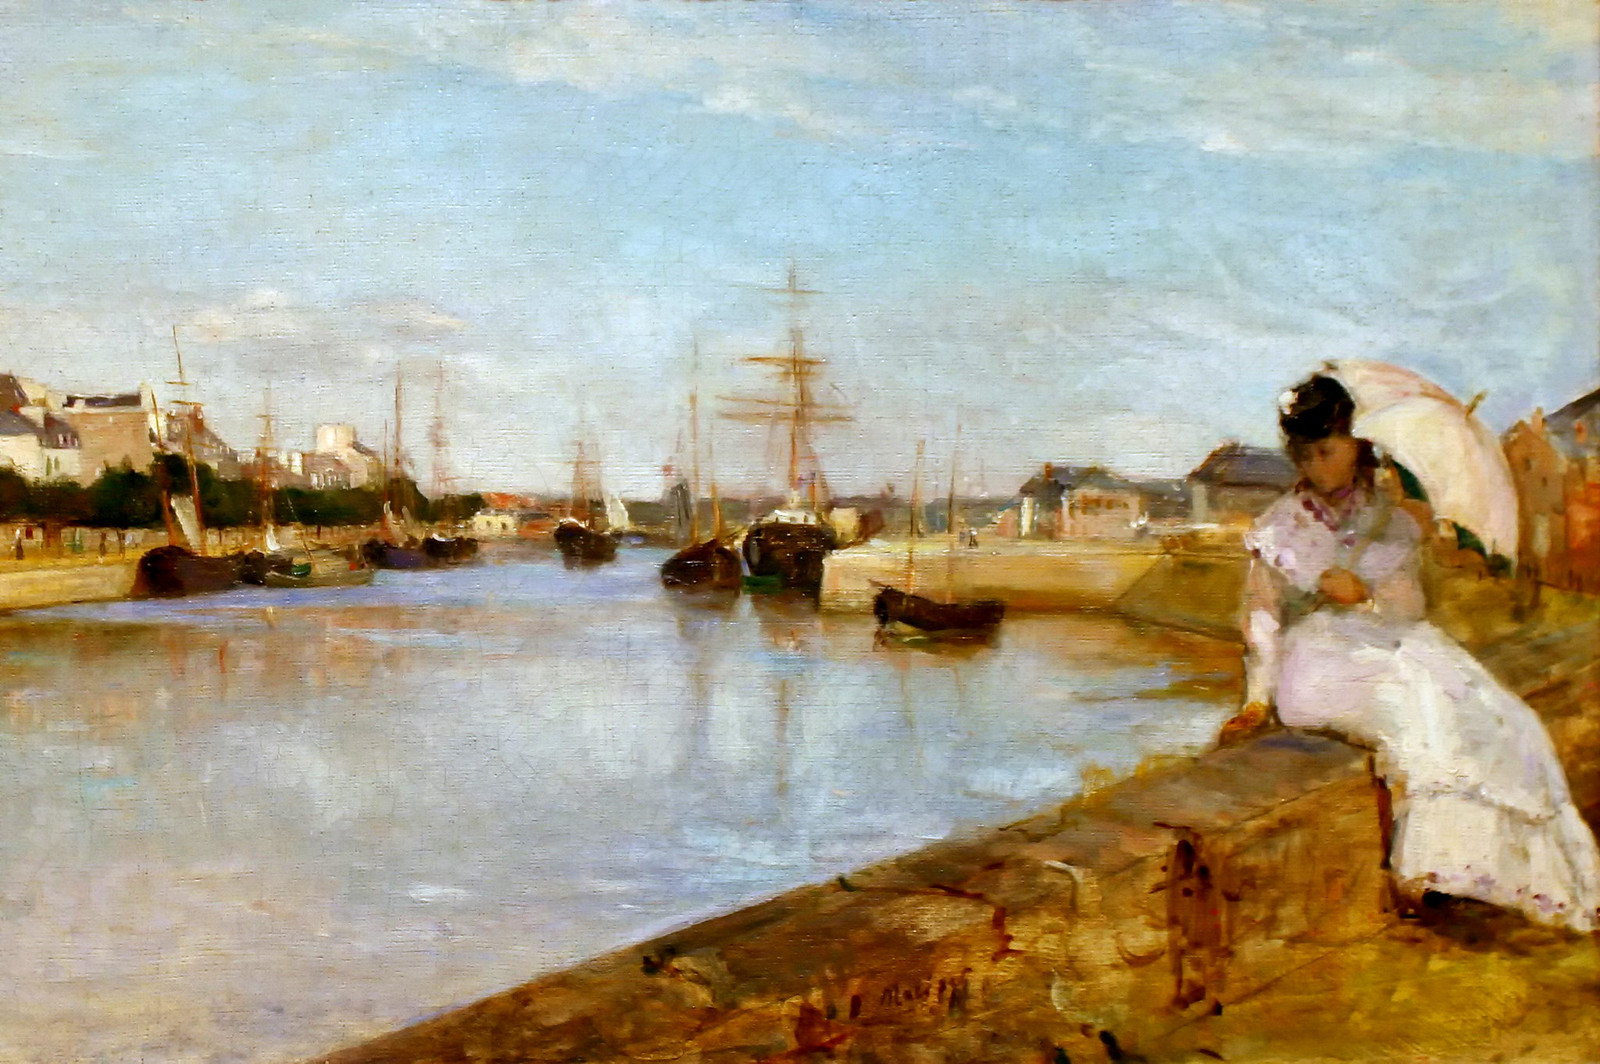 The Harbor at Lorient by Berthe Morisot, 1869